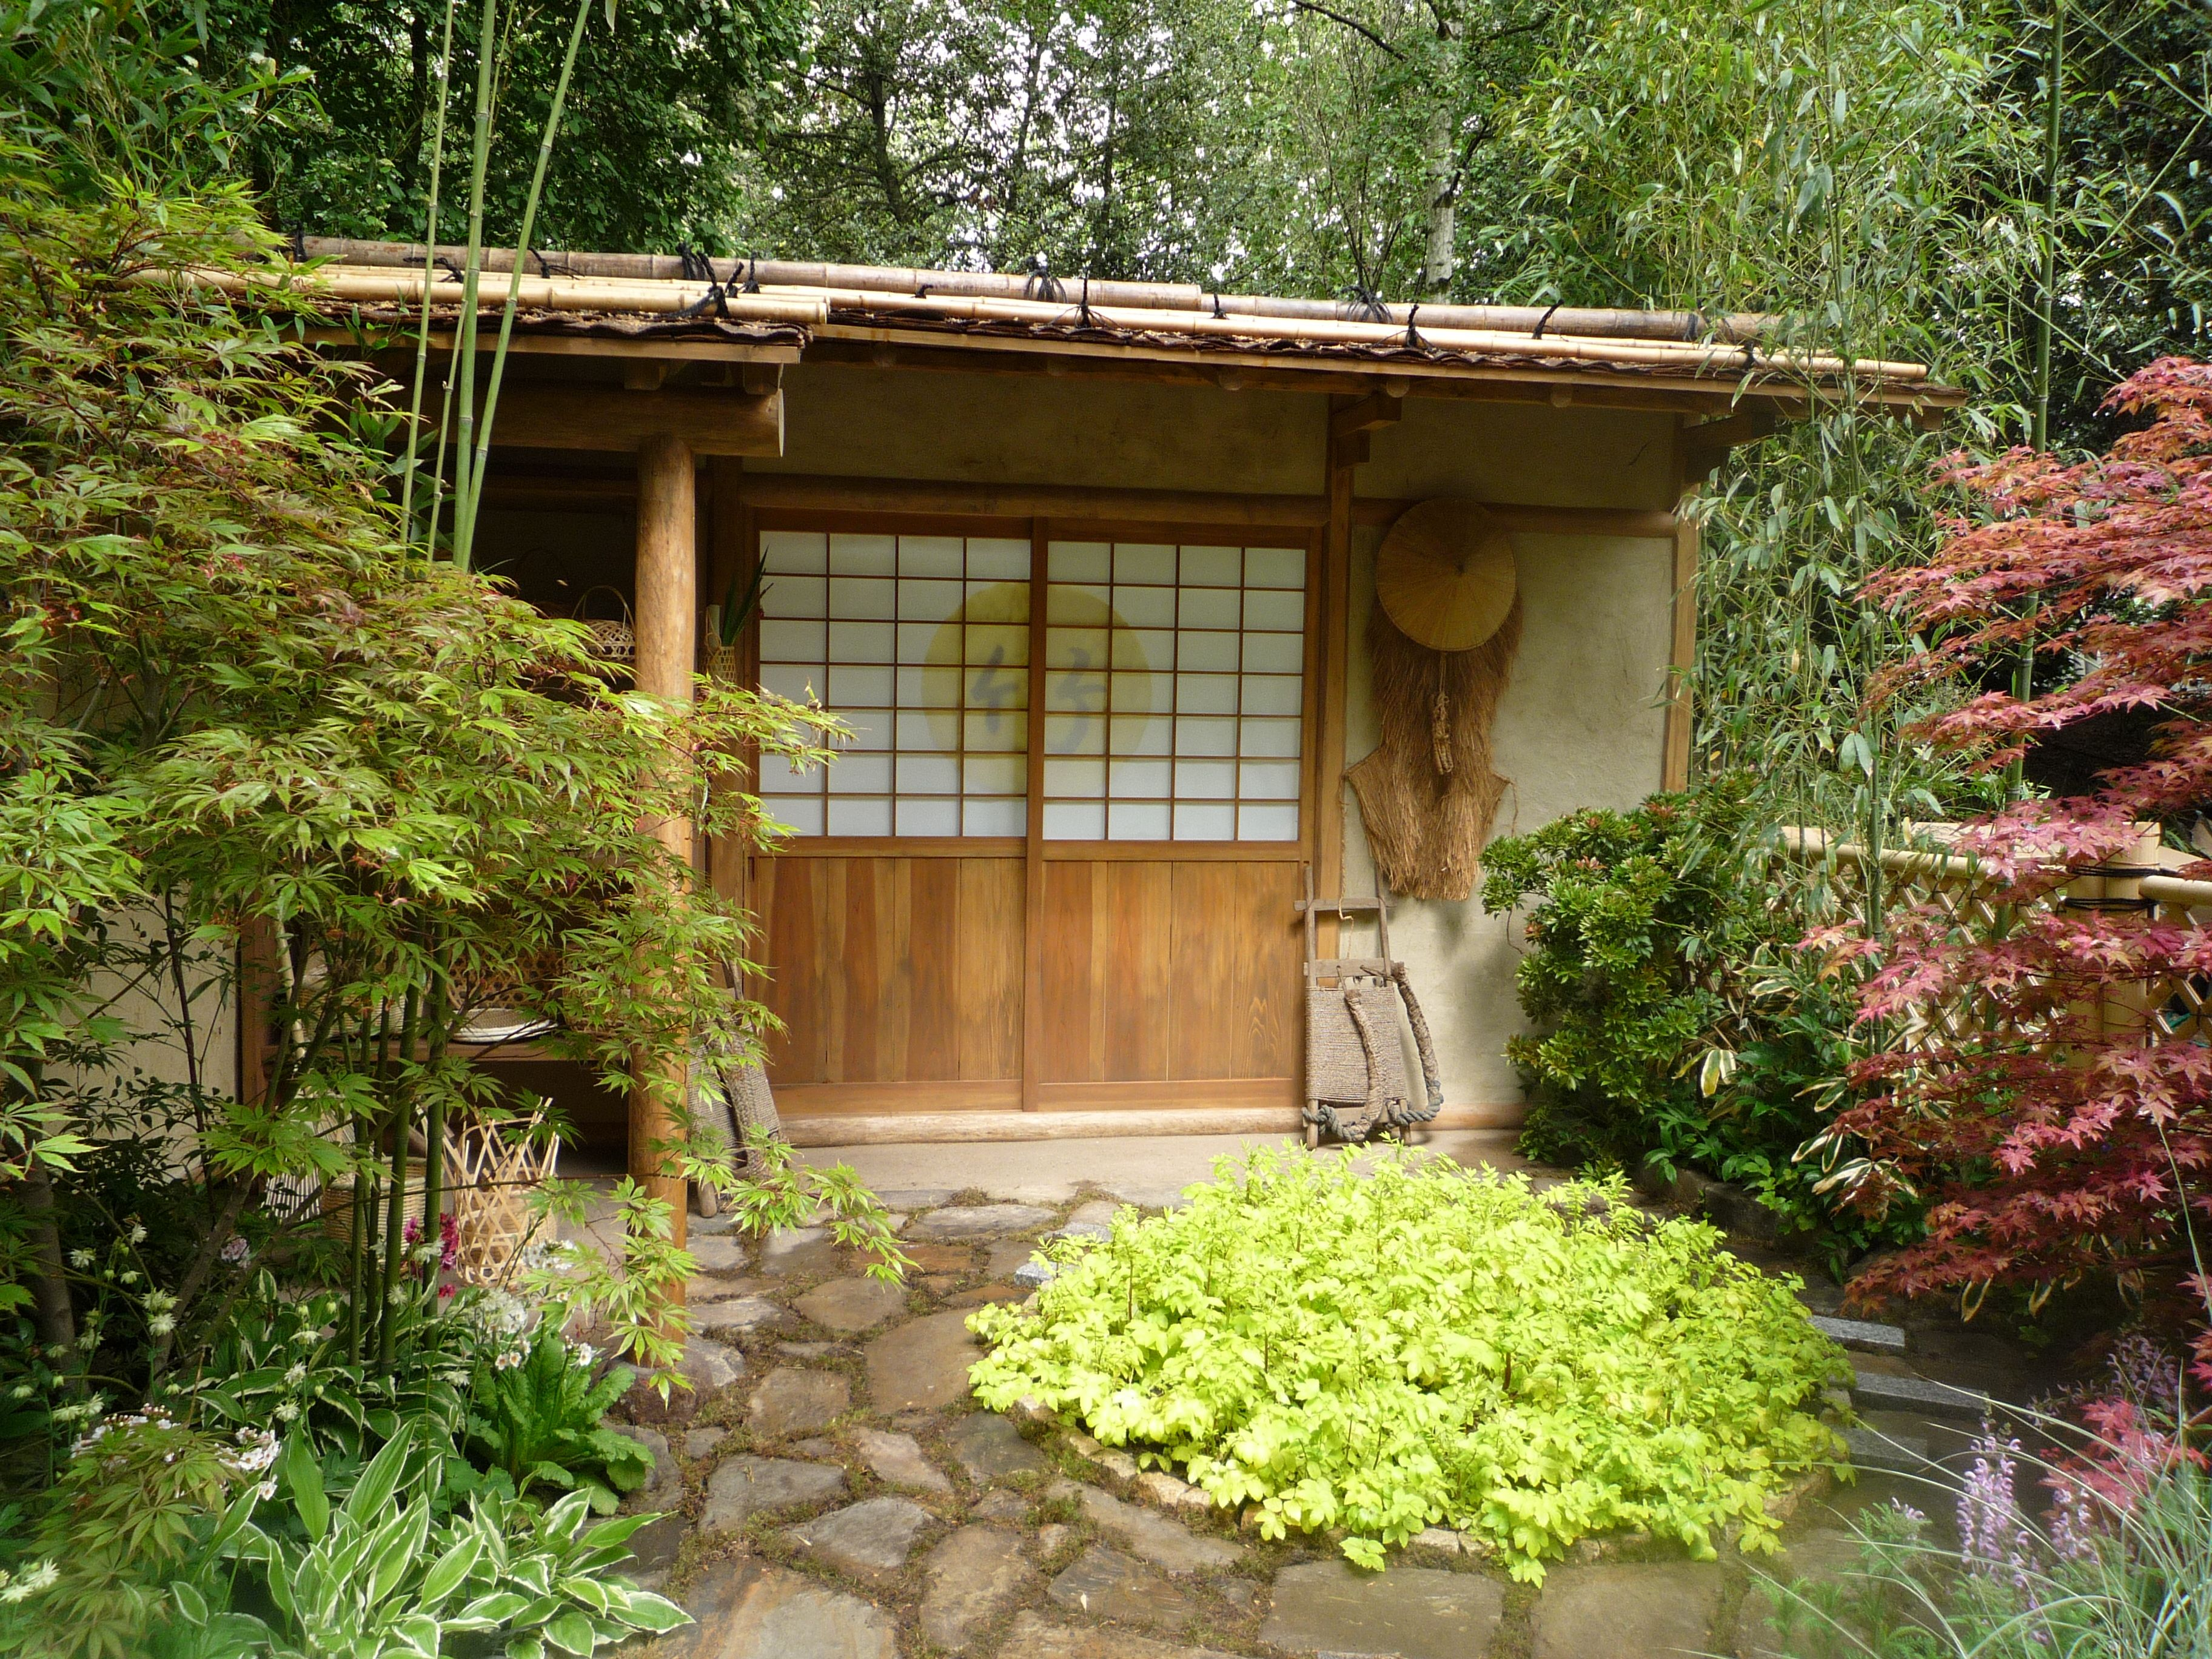 Japanese style summerhouse | Japanese tea house, Summer ...